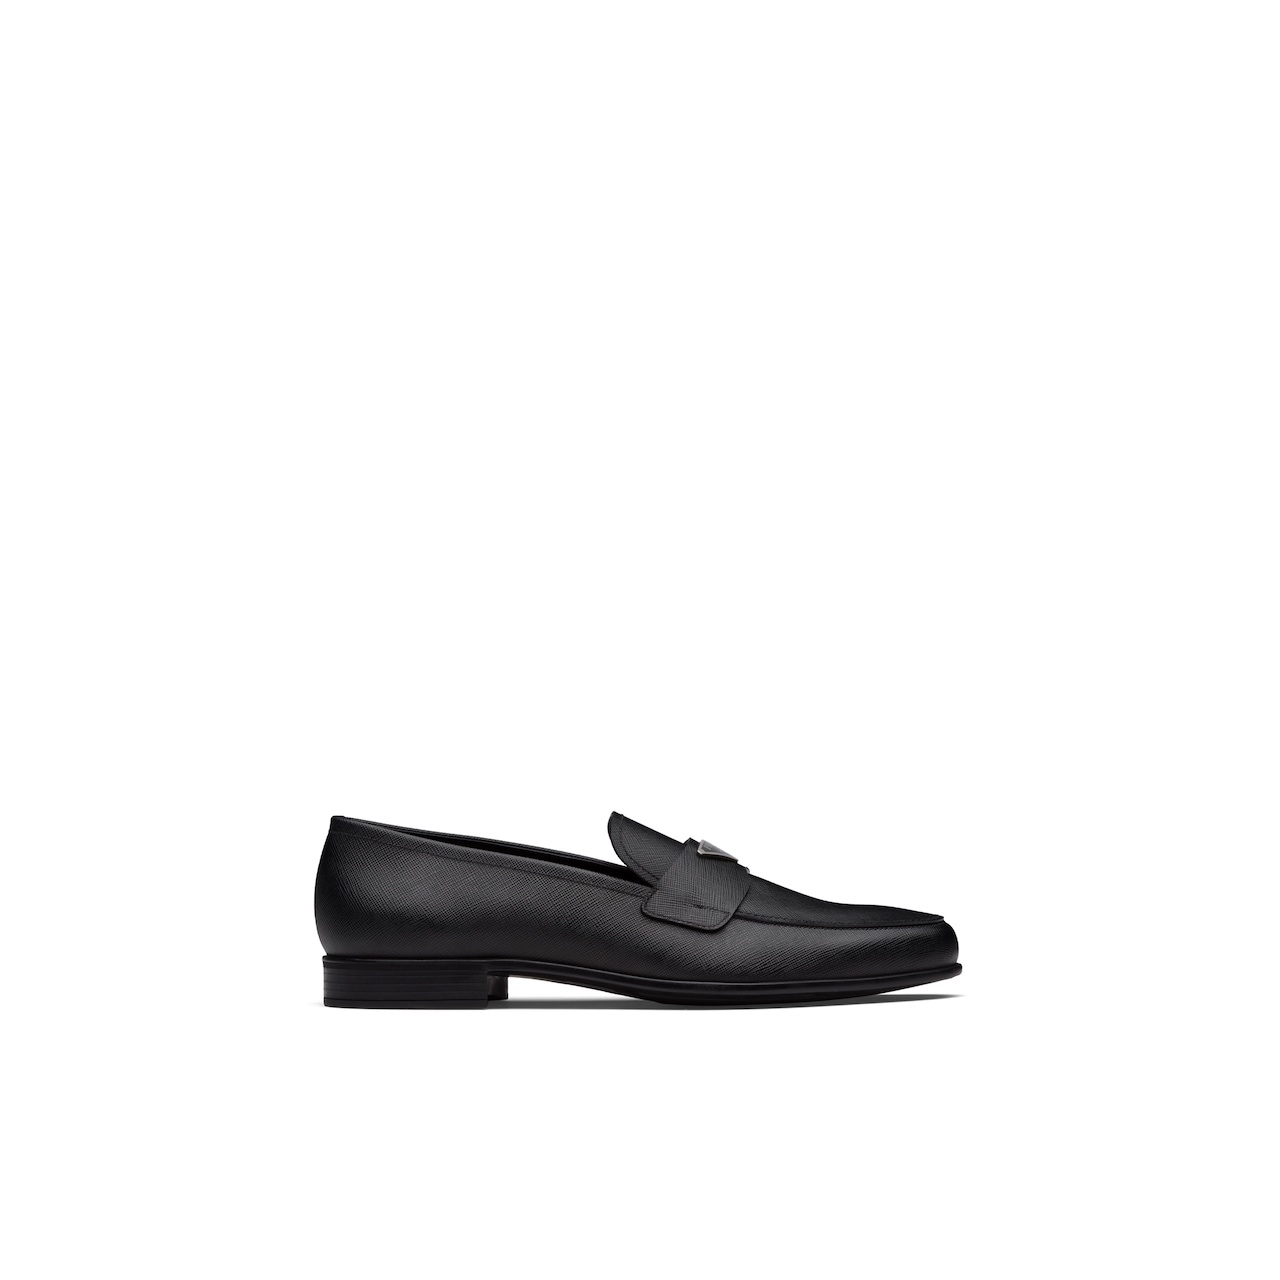 Prada Saffiano leather loafers 2